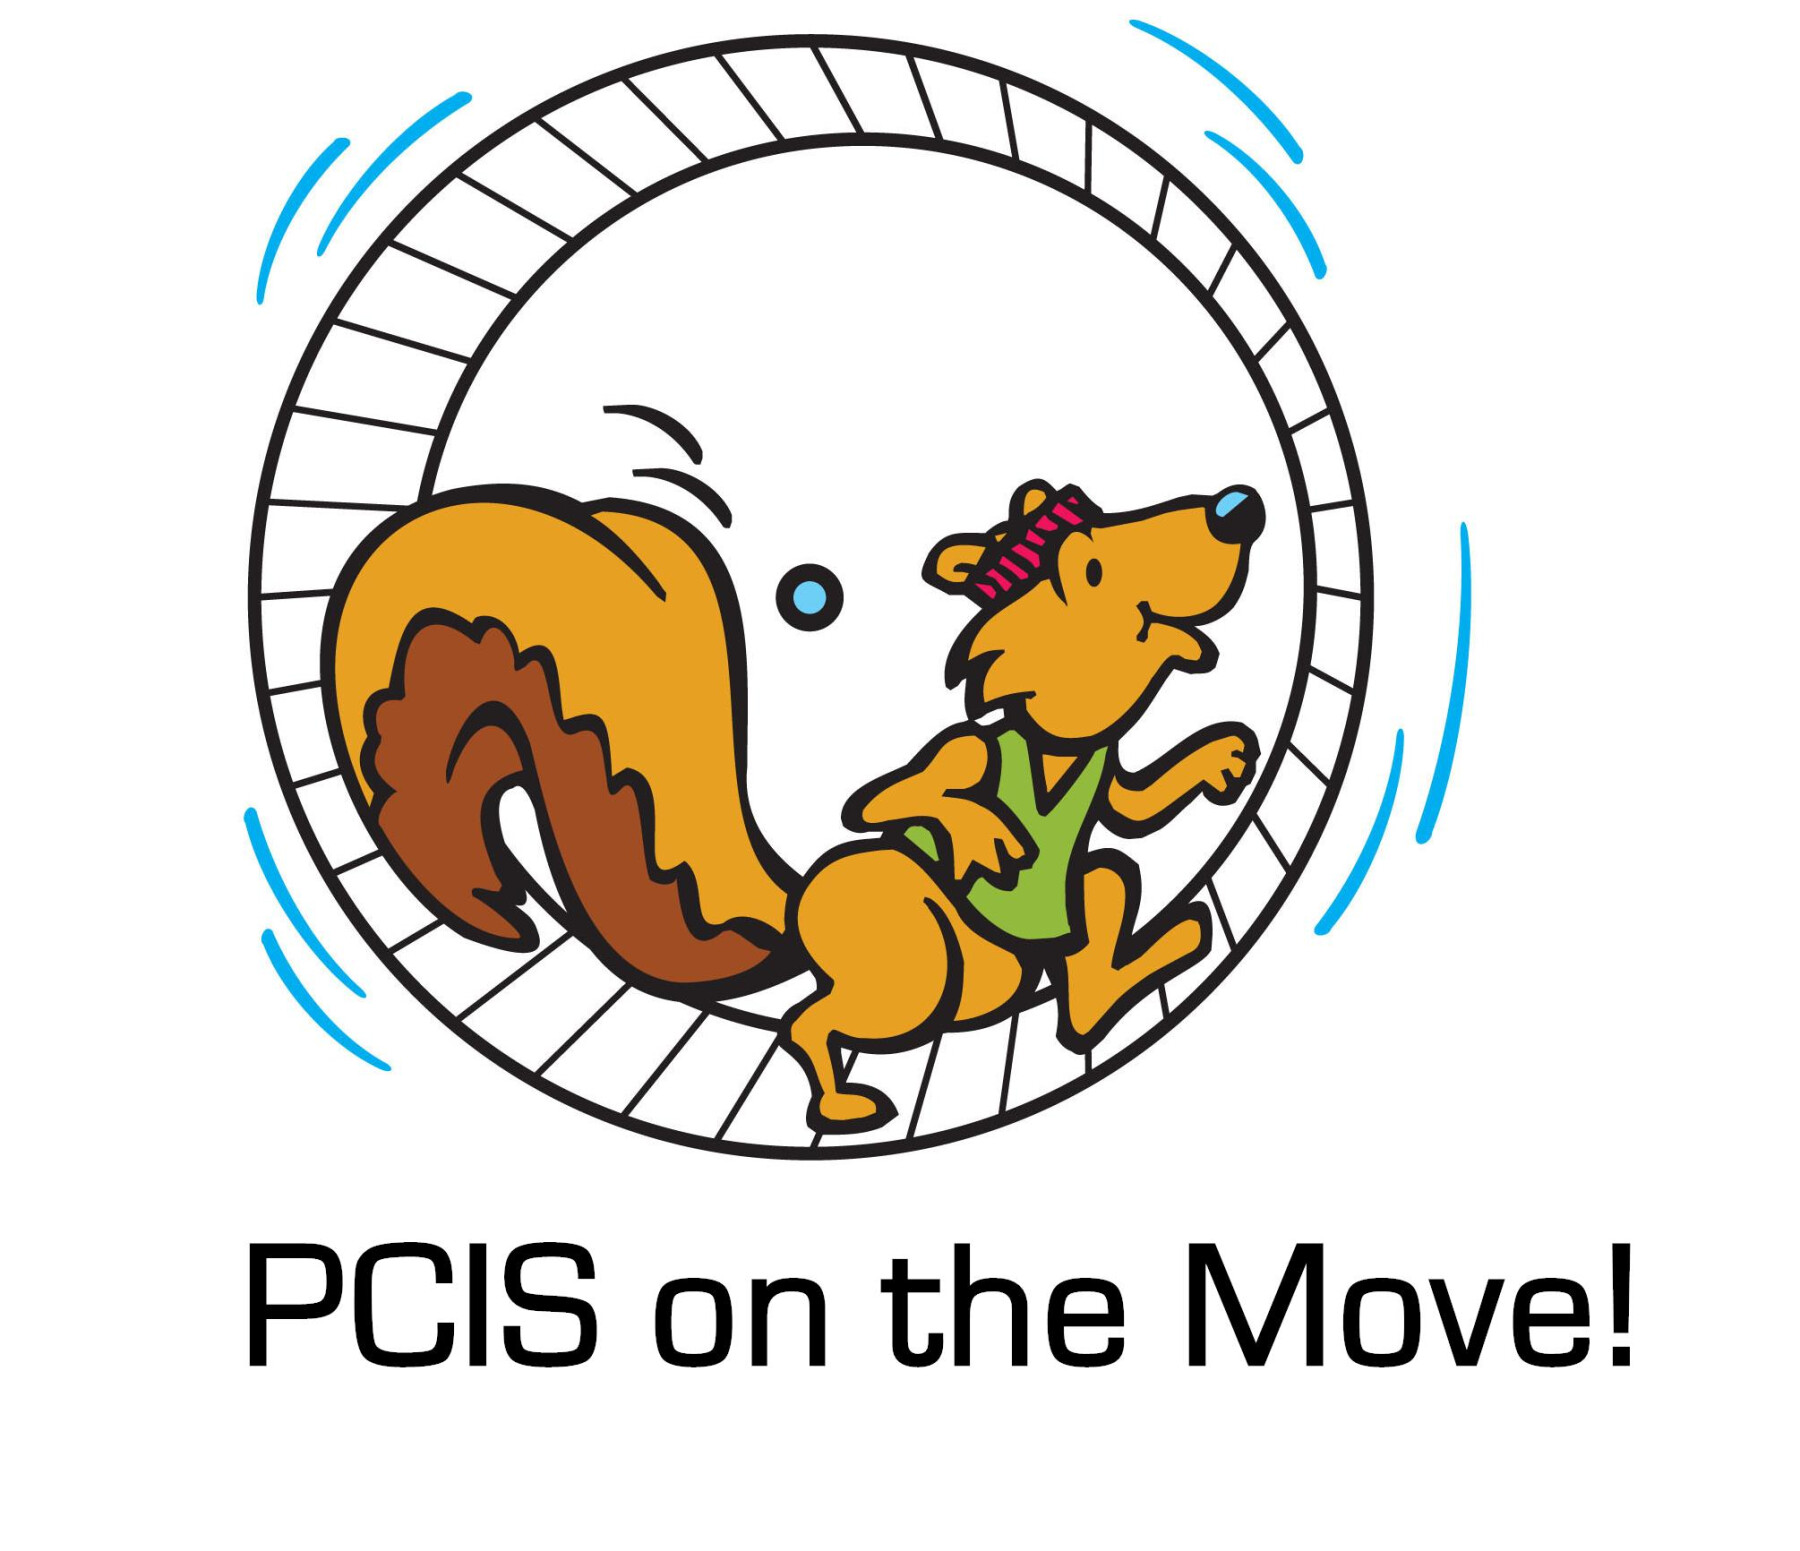 PCIS on the Move!